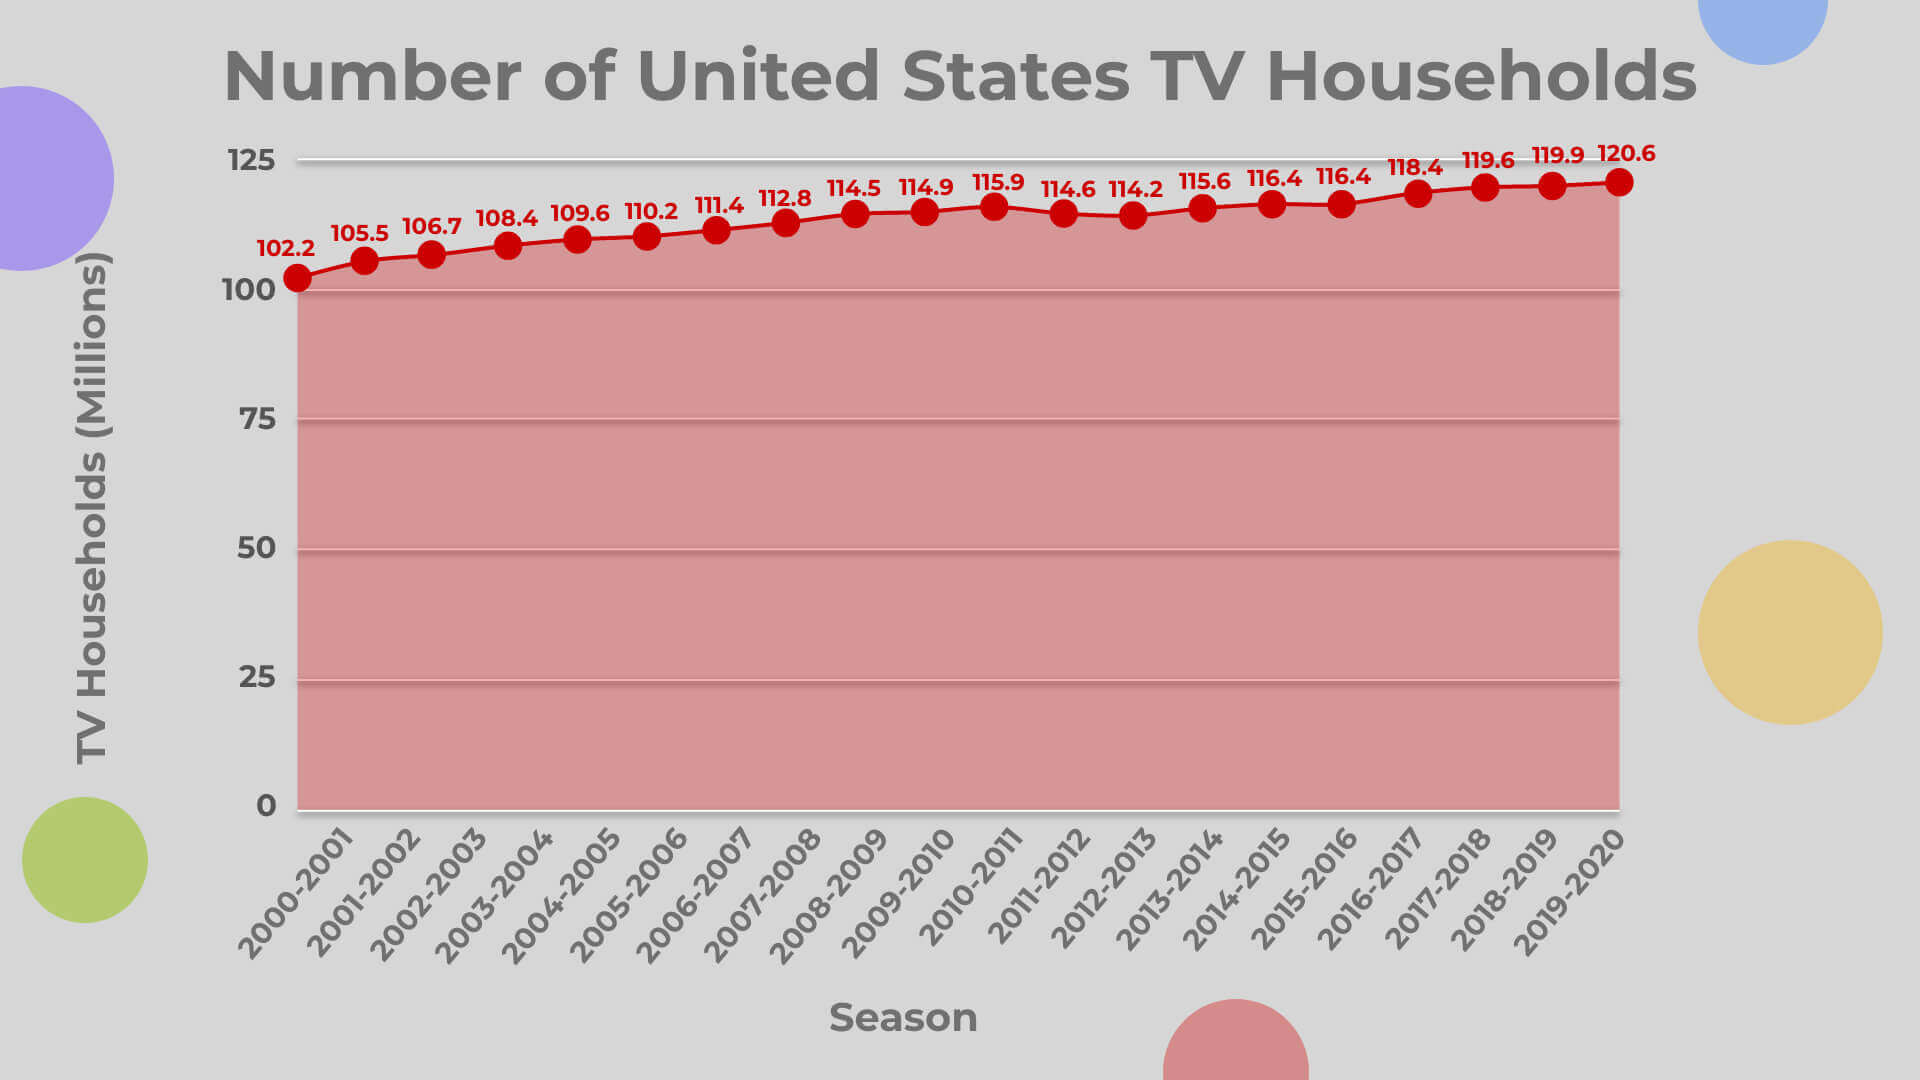 1. Number of United States TV Households